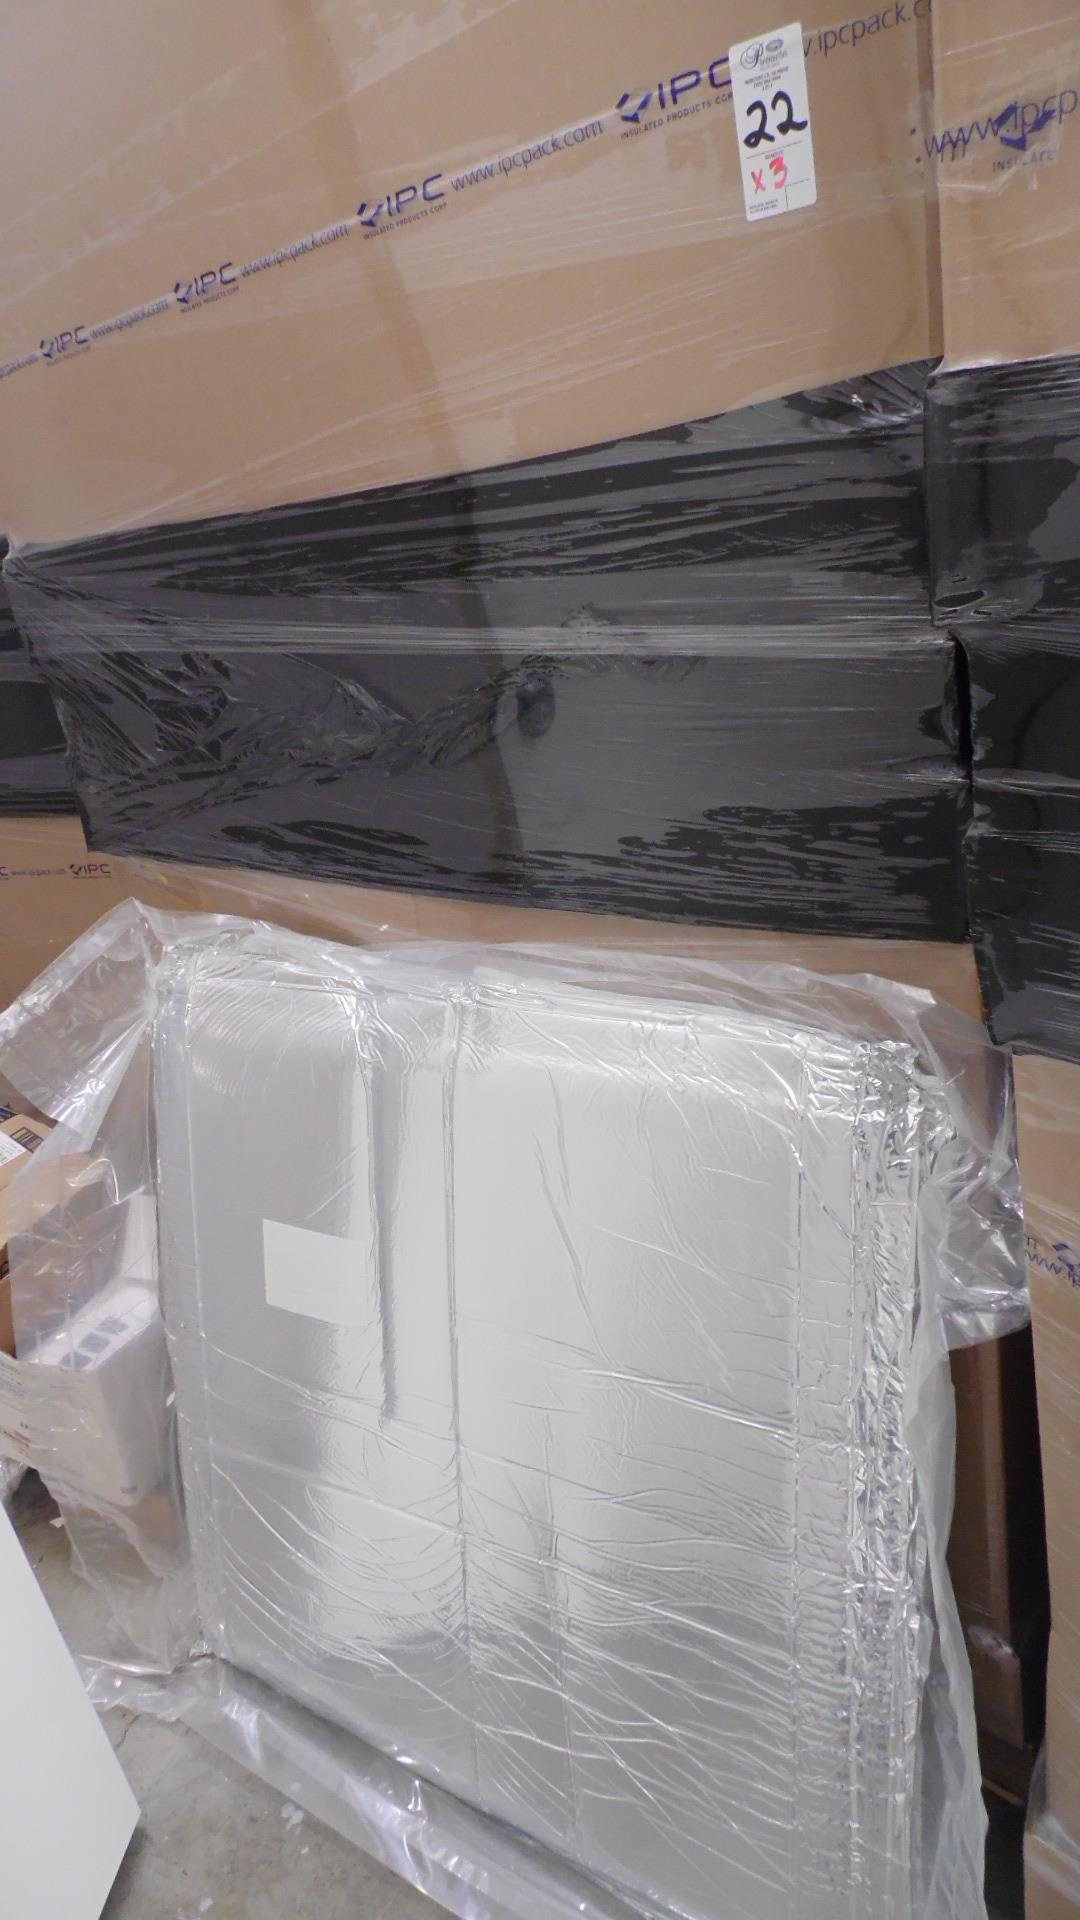 Lot 22 - INSULATED PACKS 15X11X11 (QTY 400)